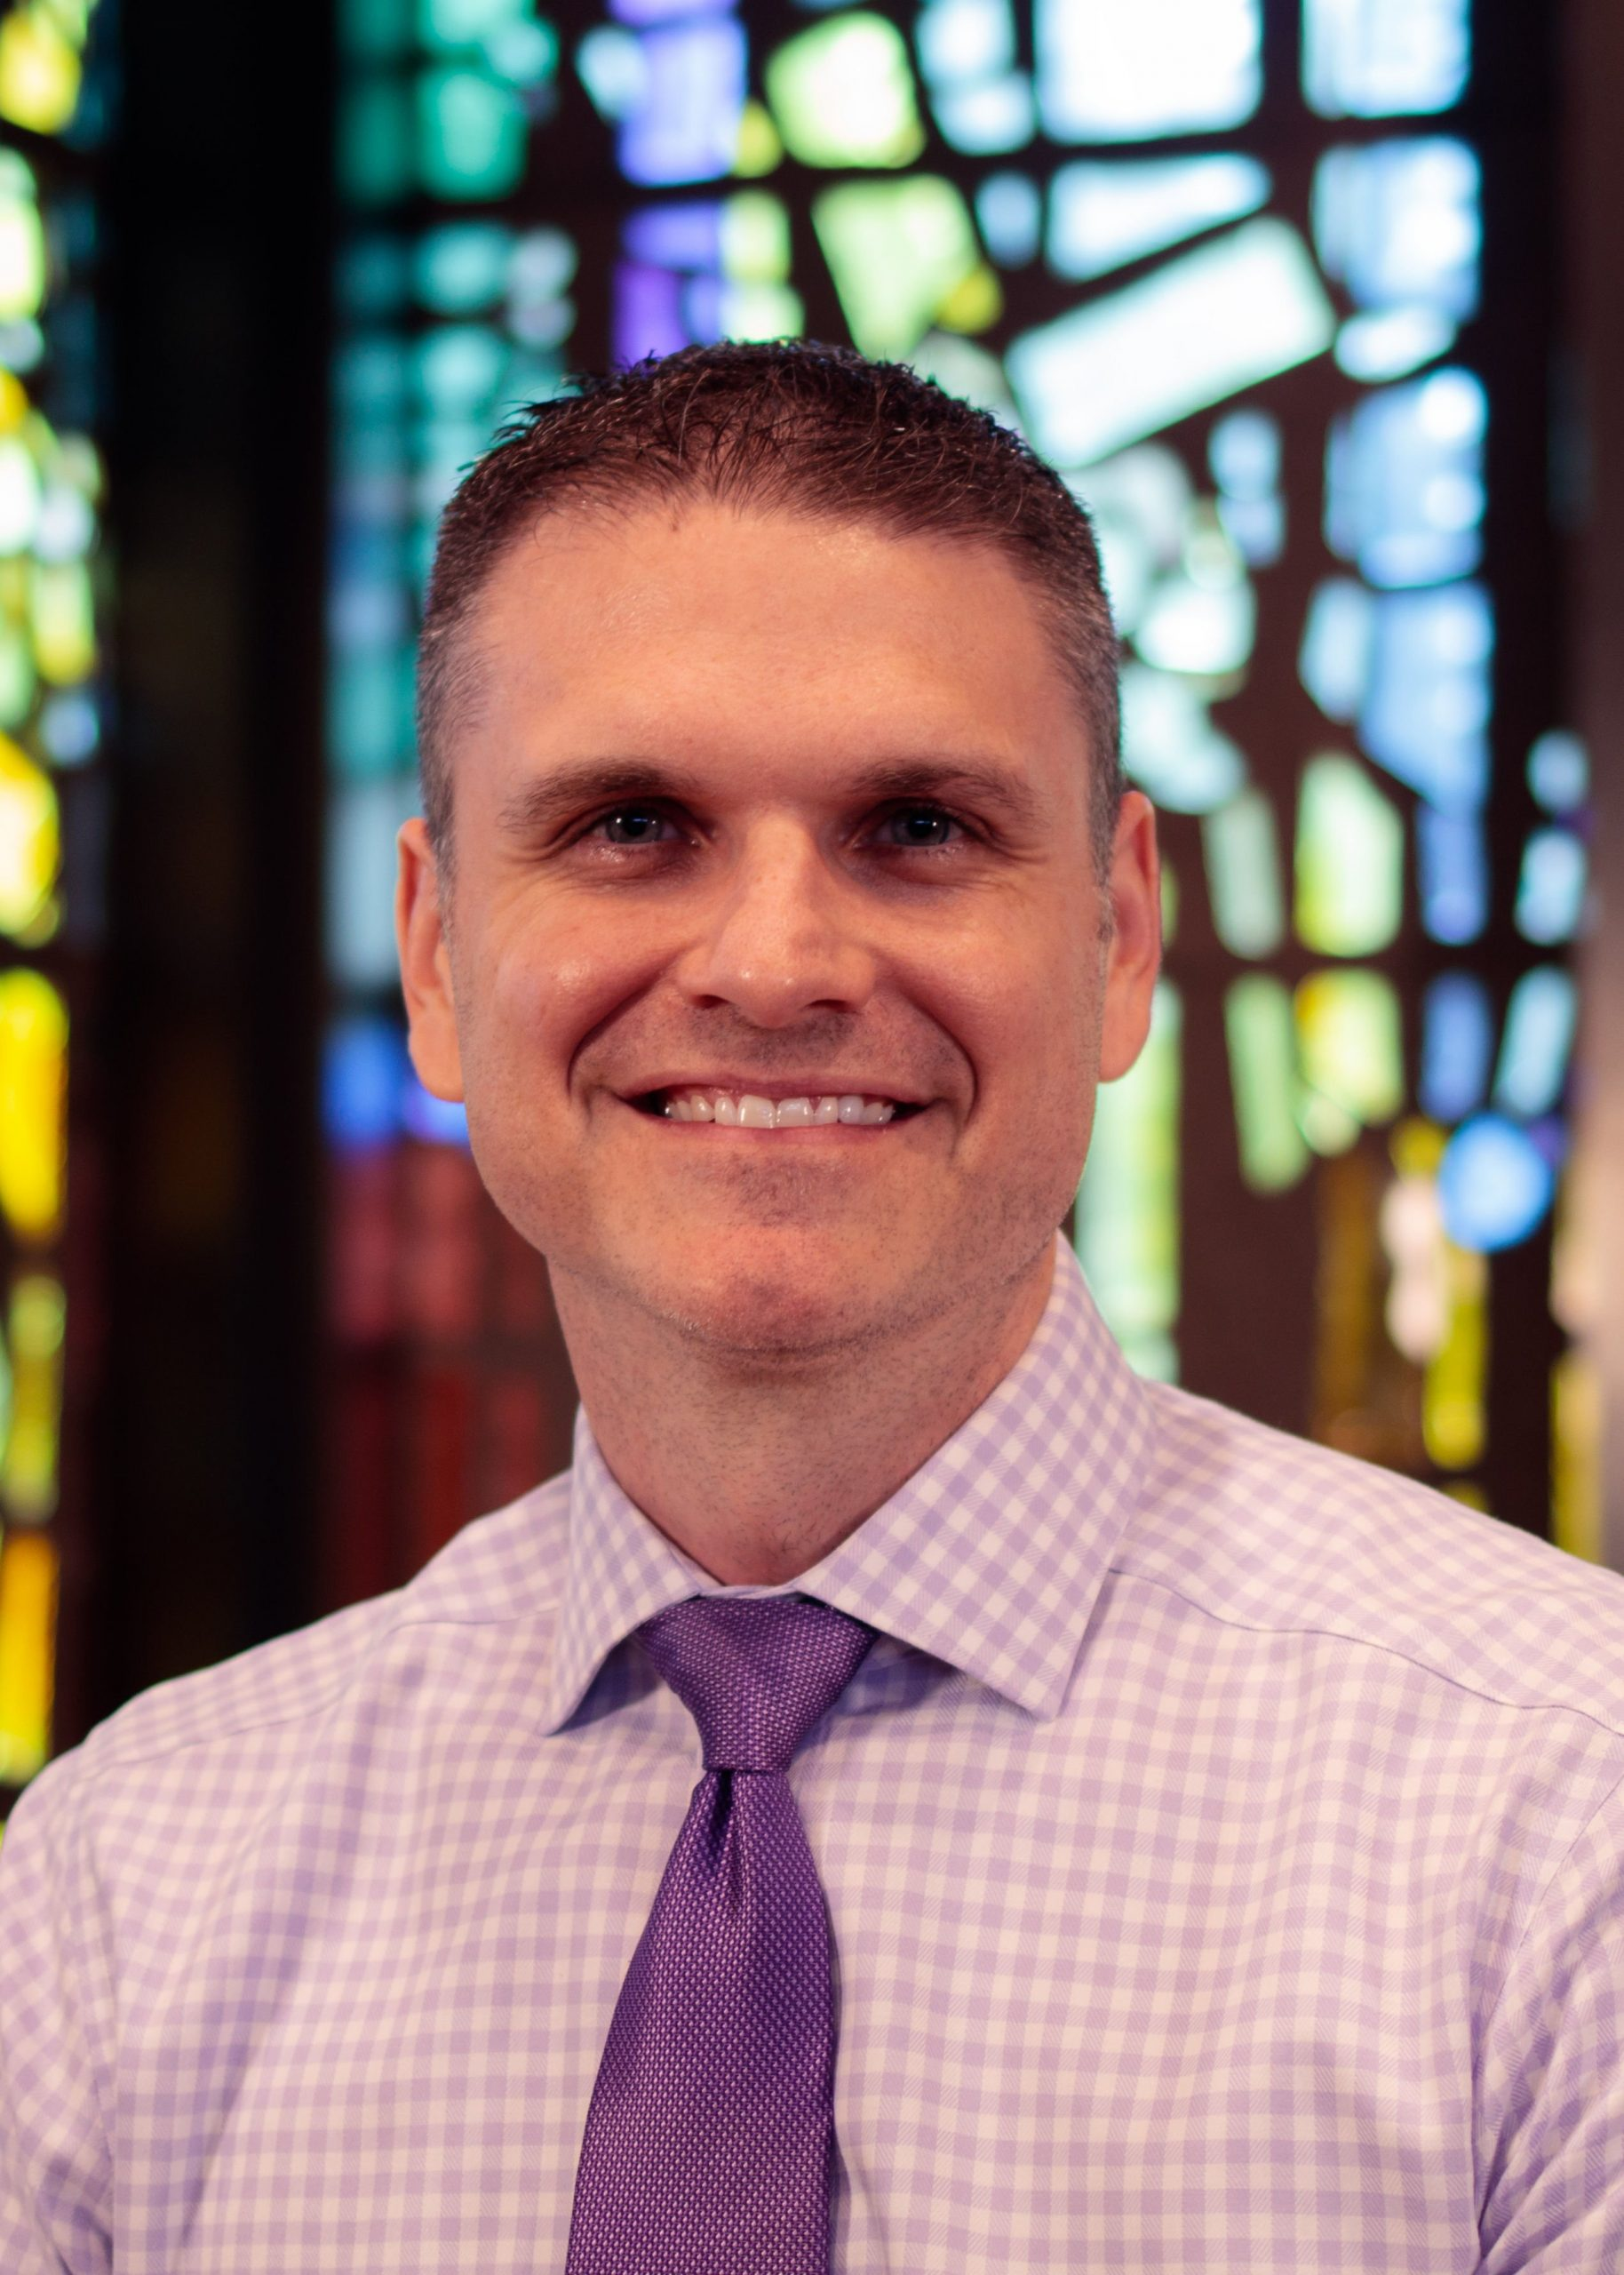 Dr. Pellechia Accepts New Position